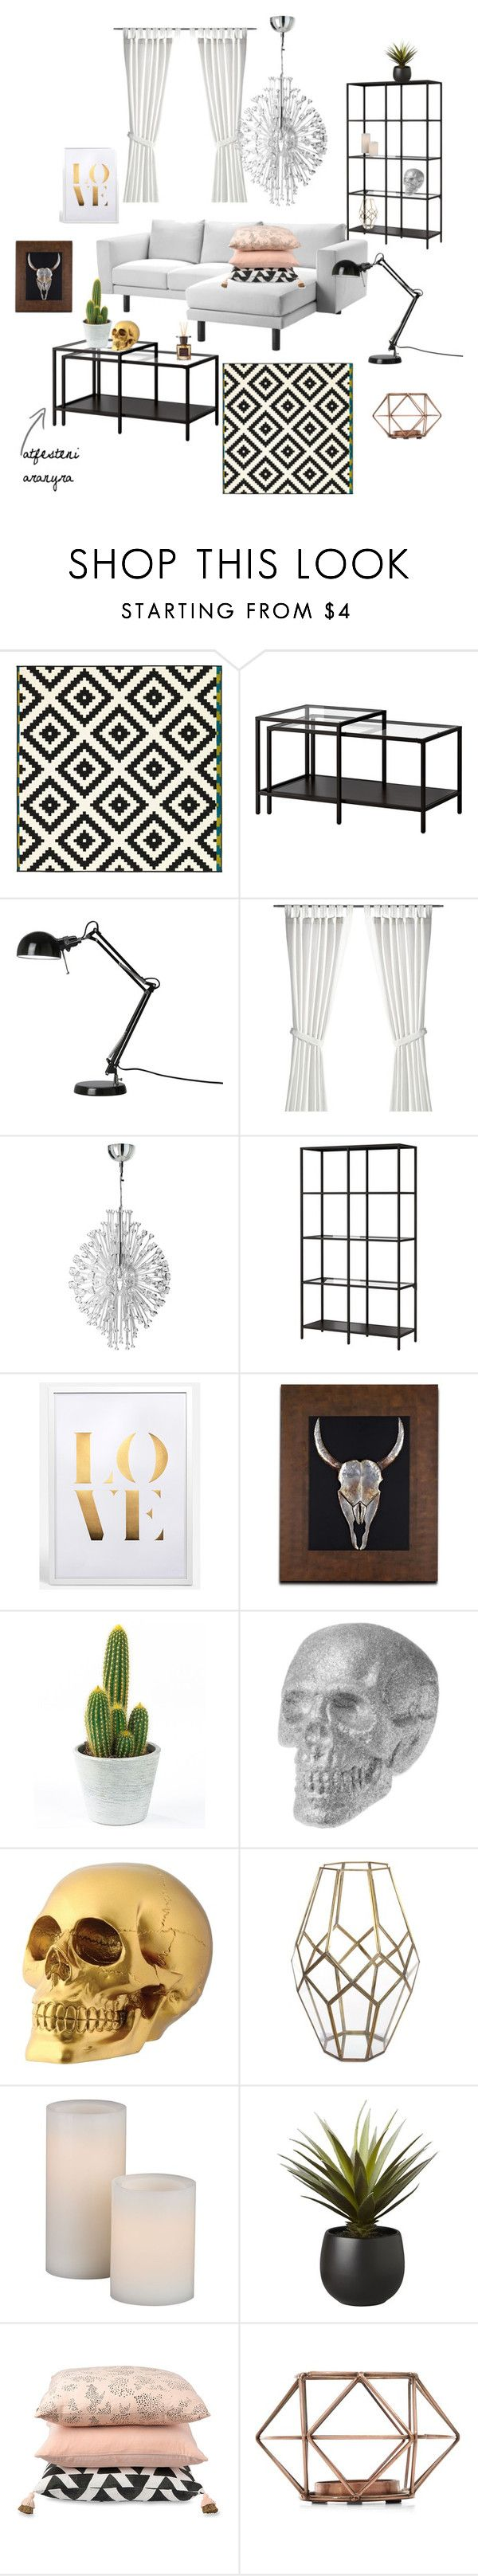 """nappali tervek"" by georgina-muller on Polyvore featuring interior, interiors, interior design, home, home decor, interior decorating, Shishi, CB2 and Culti"